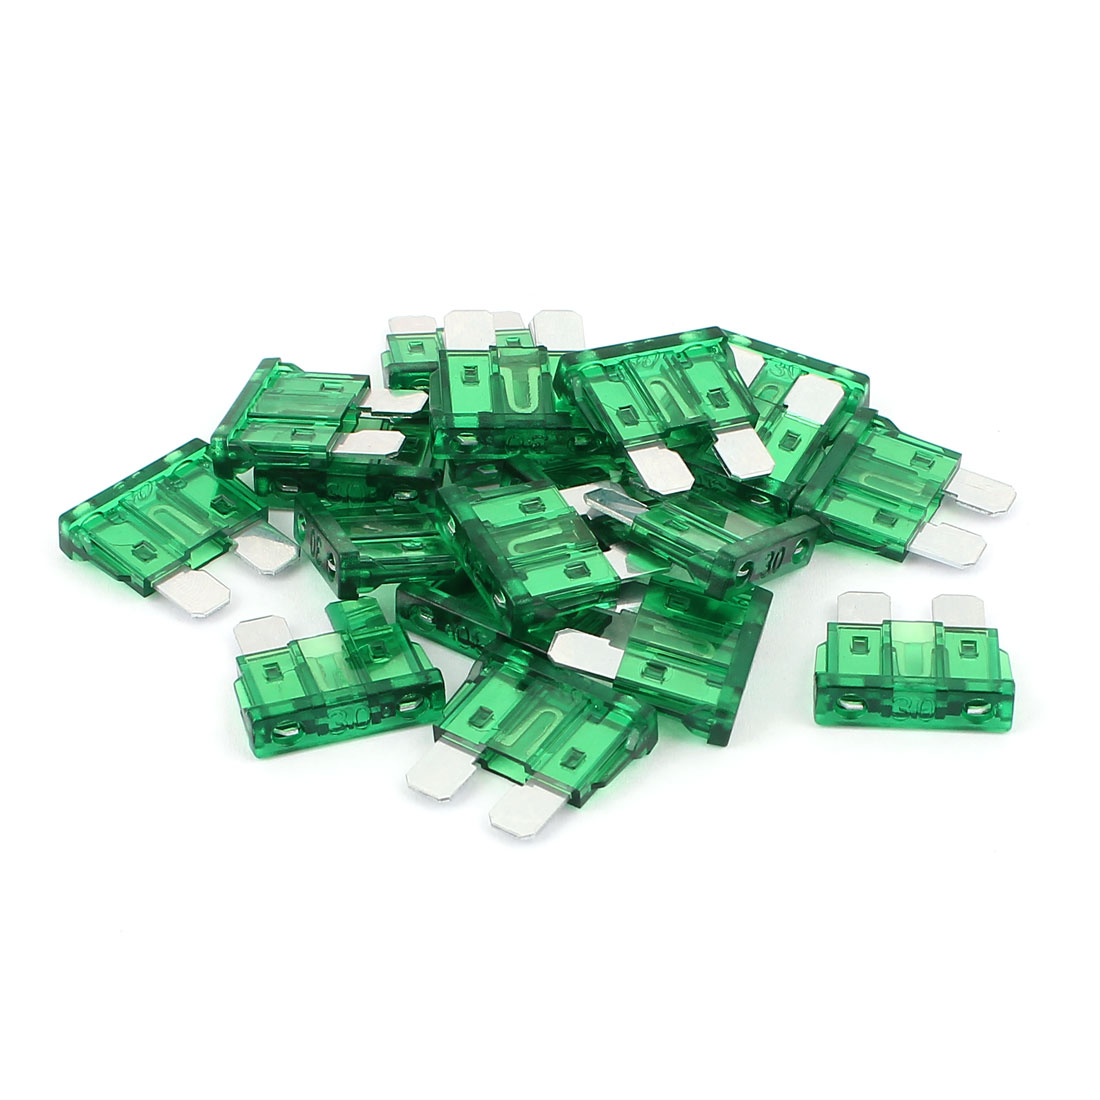 Plastic Housing Max Blade Fuse Green for Automotive Car 30A 32V 19 Pcs